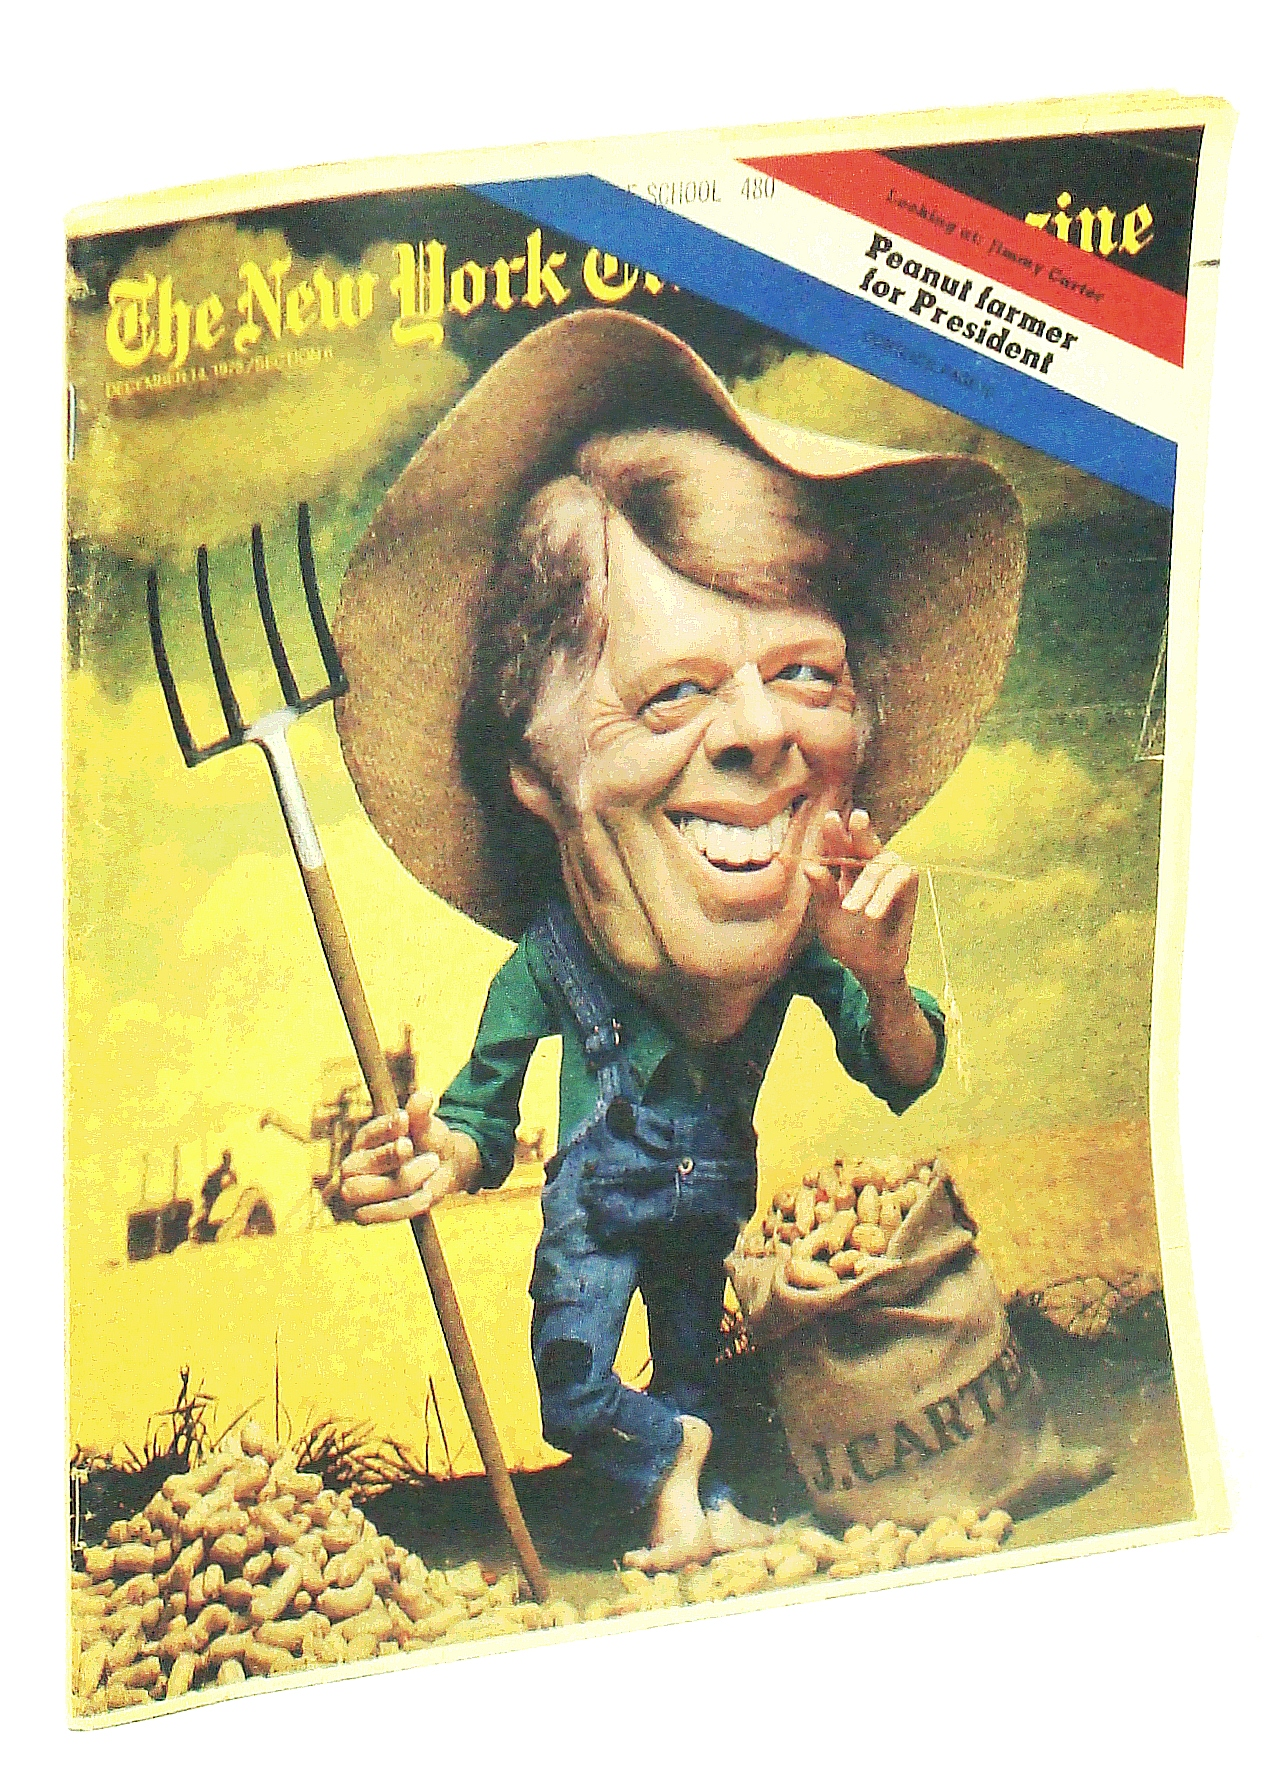 Image for The New York Times Magazine, December [Dec.] 14, 1975: Peanut Farmer for President - Jimmy Carter / O.J. Simpson of the Buffalo Bills